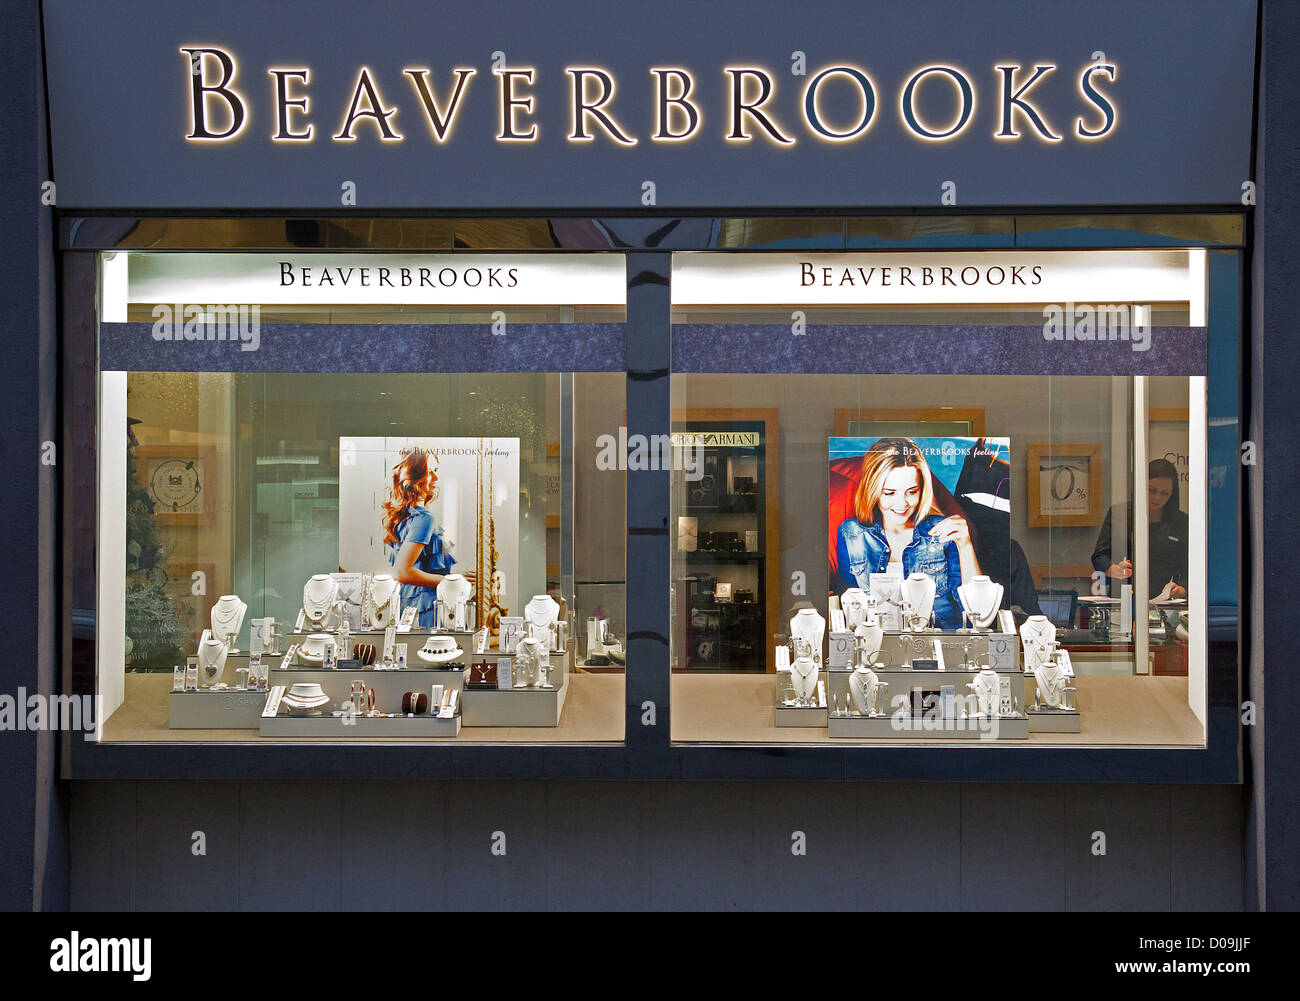 df2cc6995db Beaverbrooks Jewellers Shop Window Display Canterbury England - Stock Image